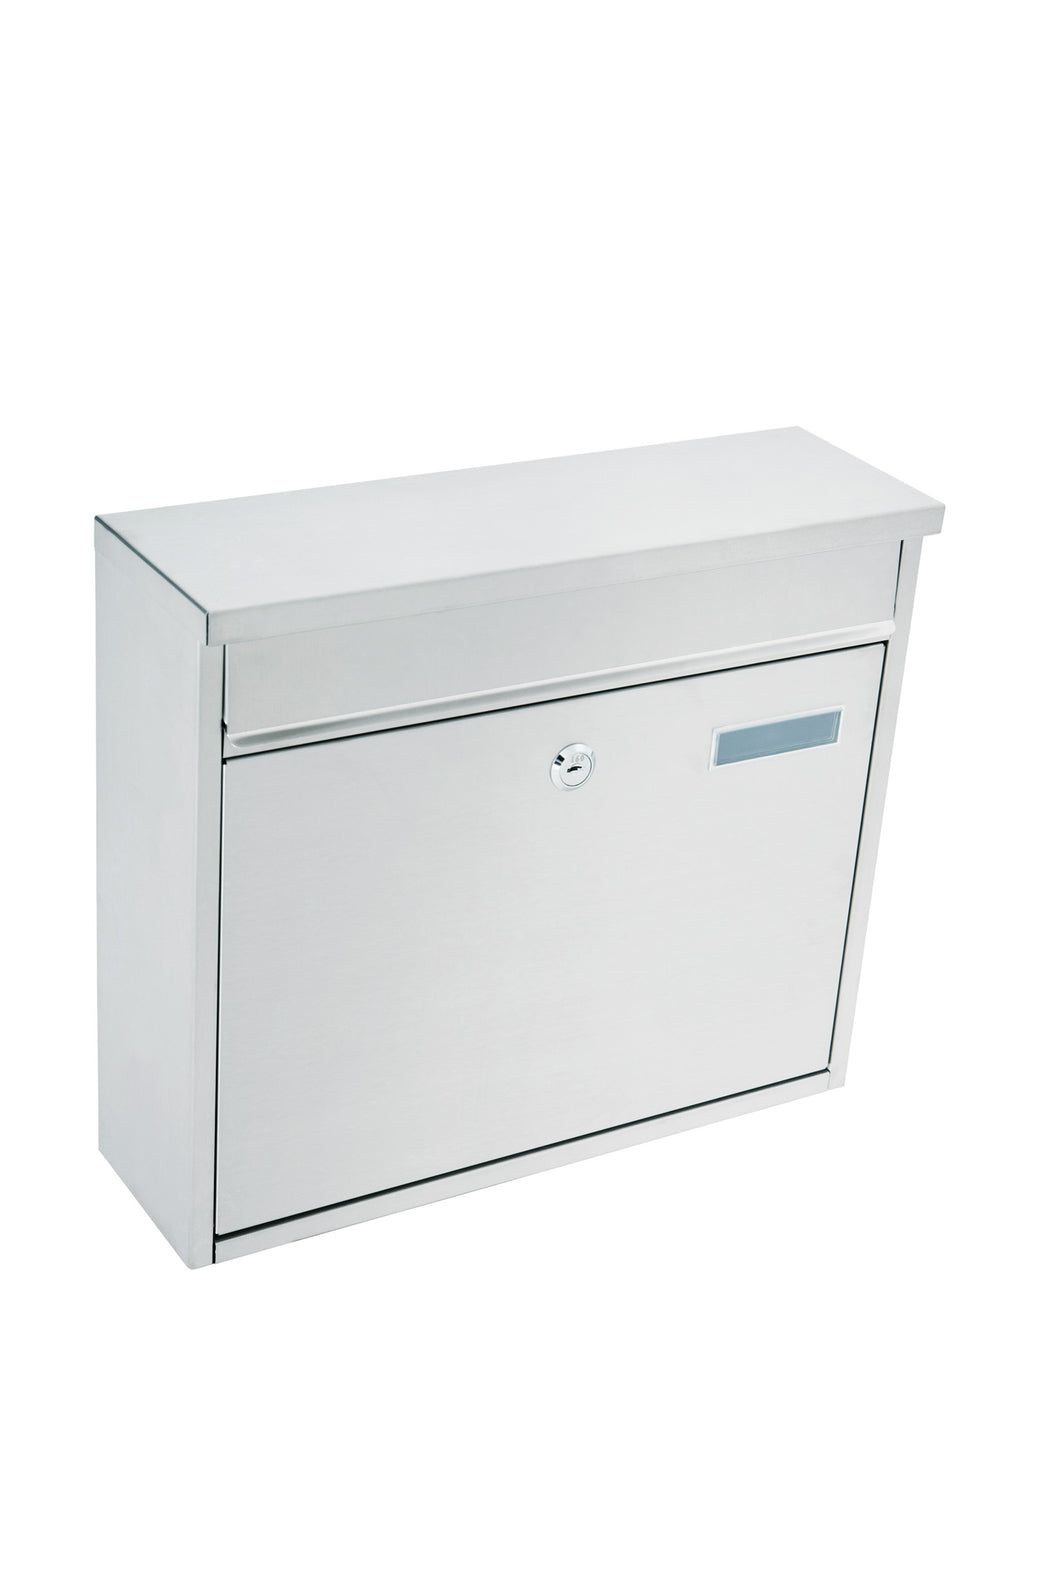 Barrow Stainless Steel Letterbox